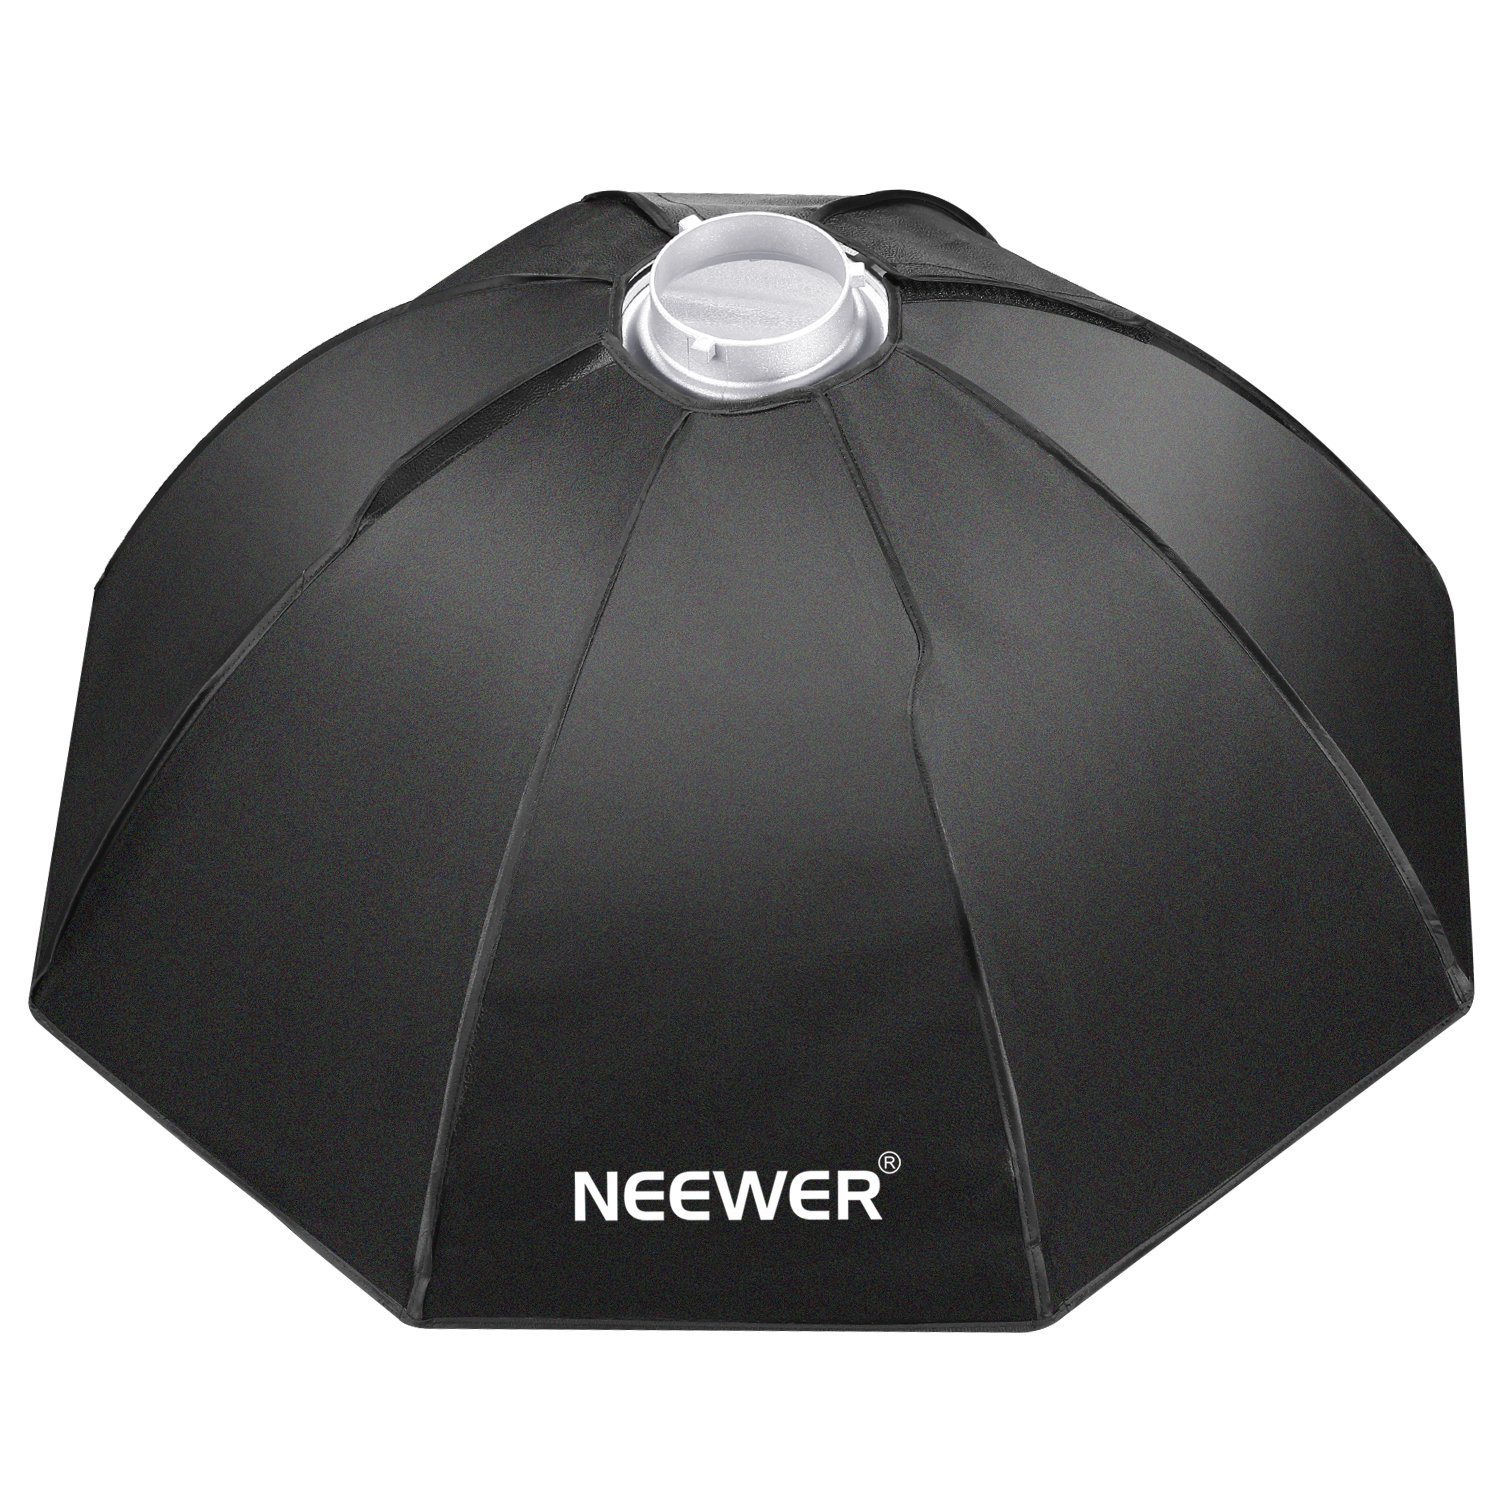 Neewer 24 inches/60 centimeters Octagon Softbox with Bowens Mount Speedring and Bag for Speedlite Studio Flash Monolight,Portrait and Product Photography